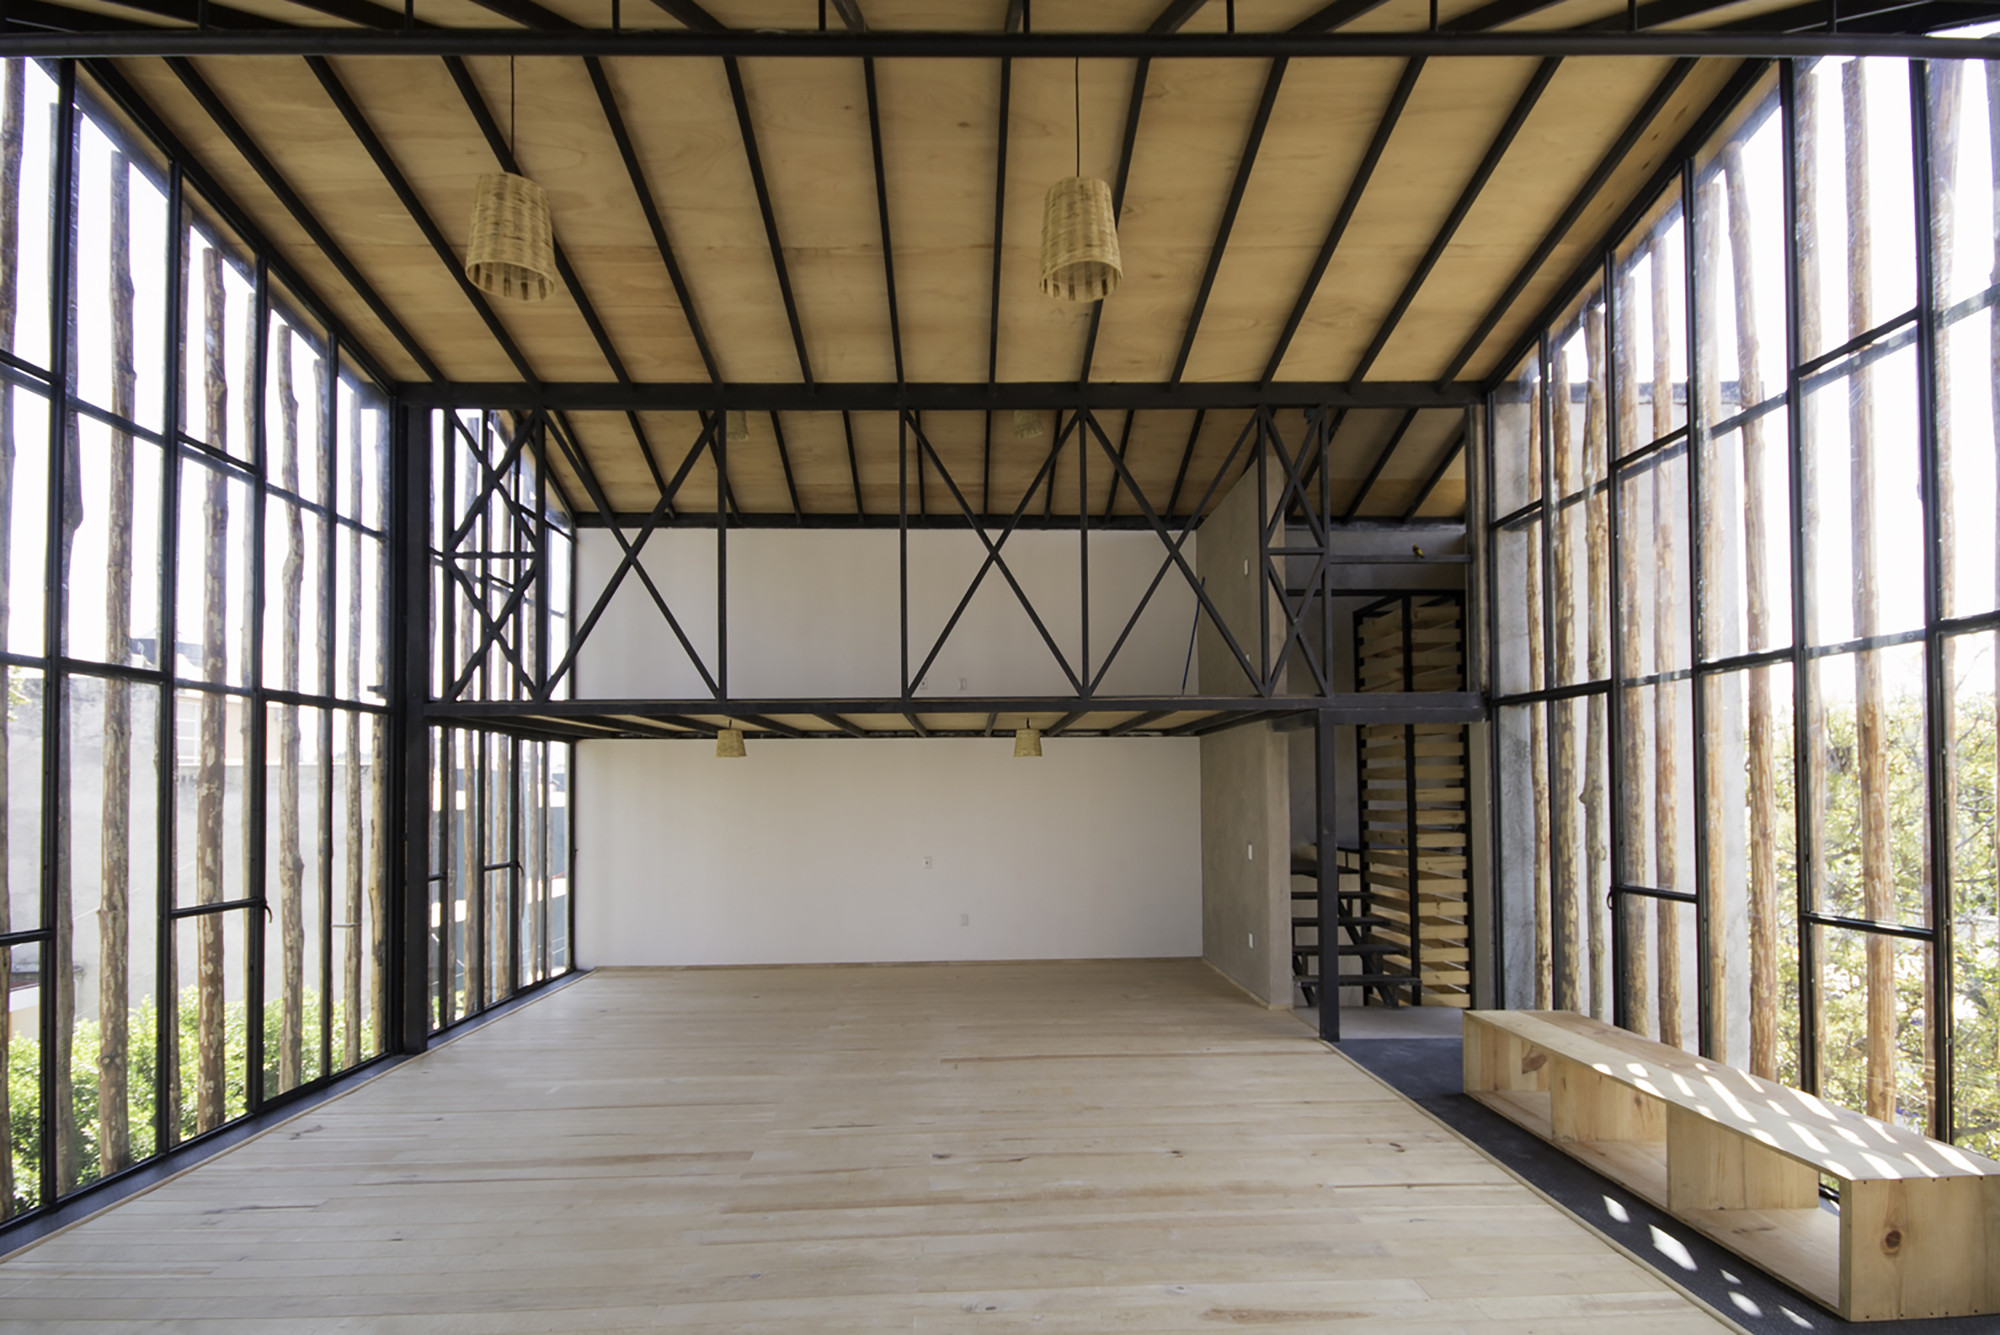 Morillo space rootstudio archdaily for Furniture 4 less salinas